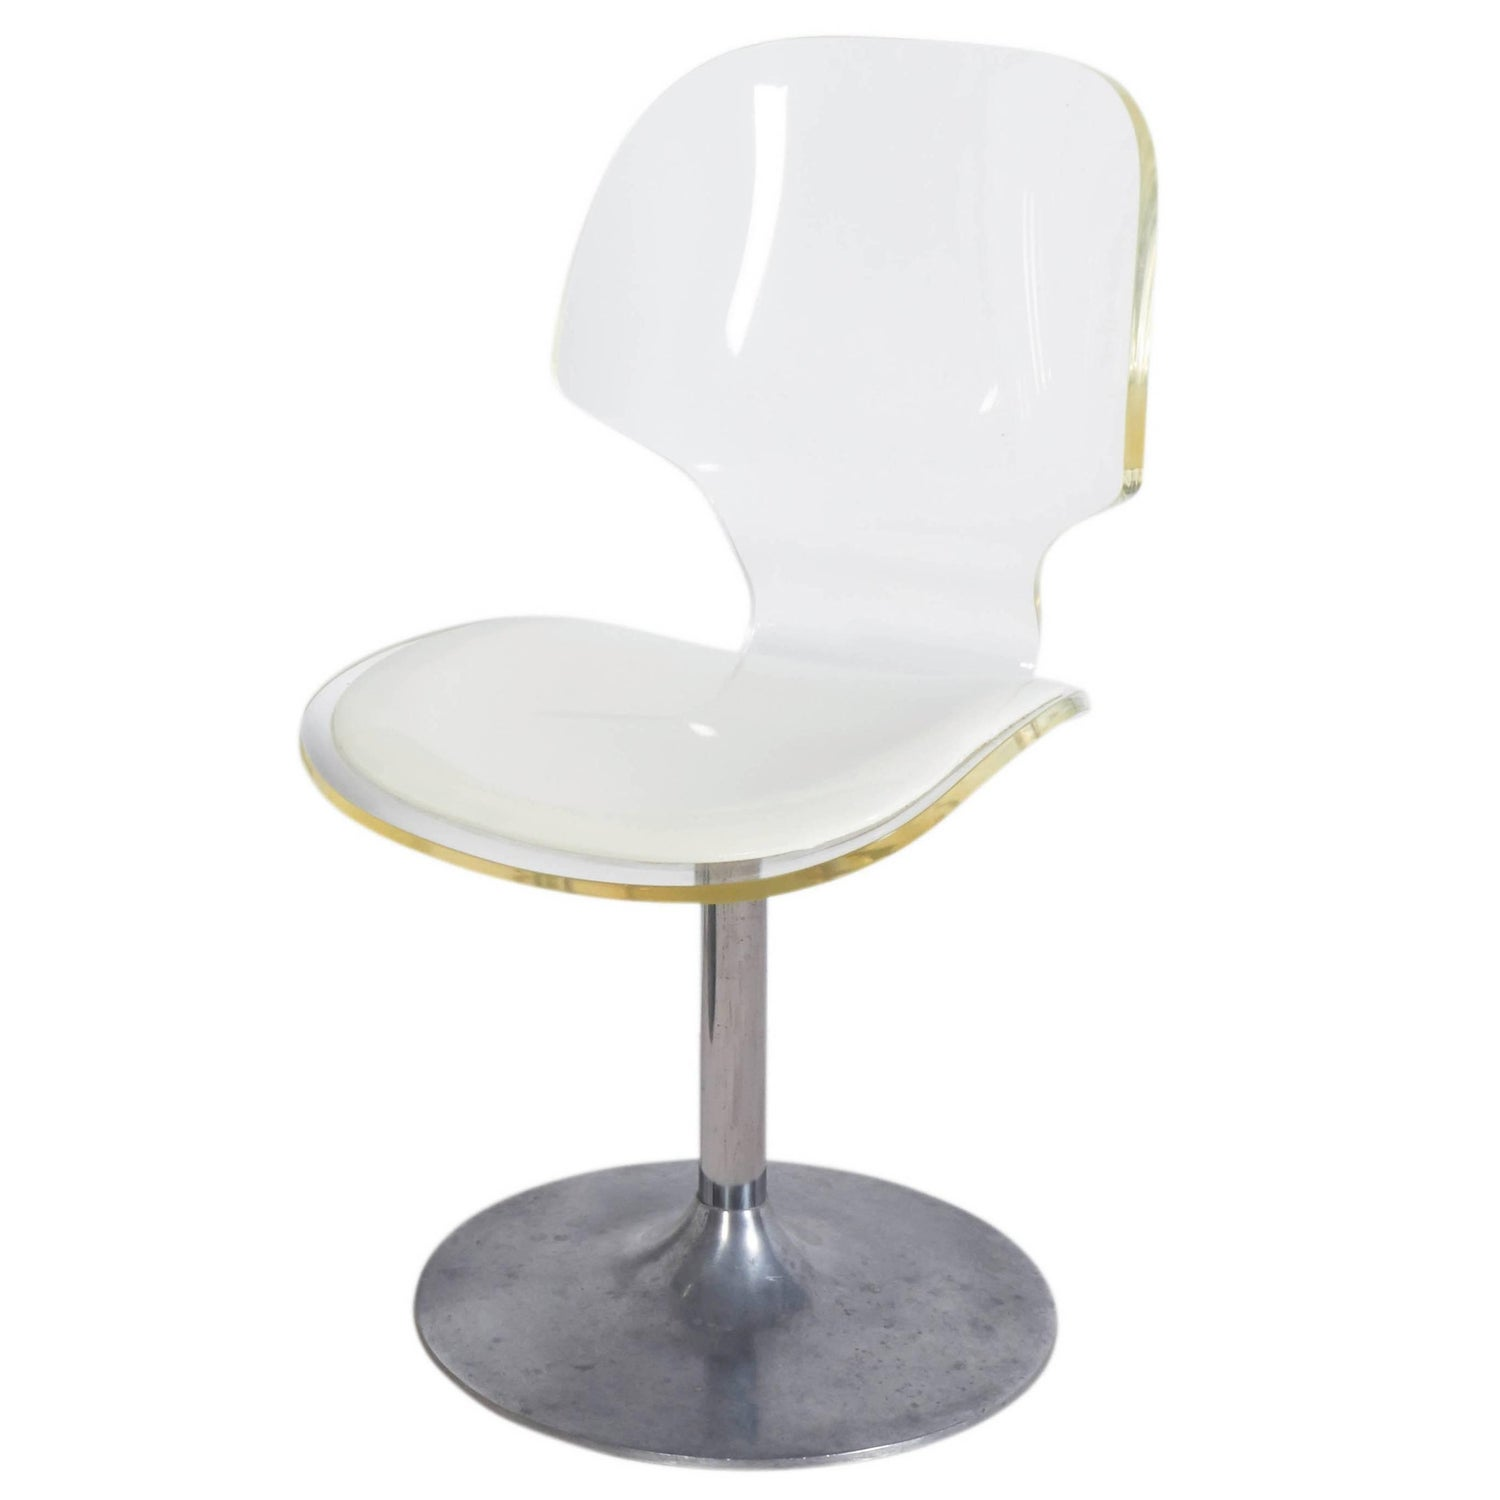 Lucite Side Chairs 40 For Sale at 1stdibs